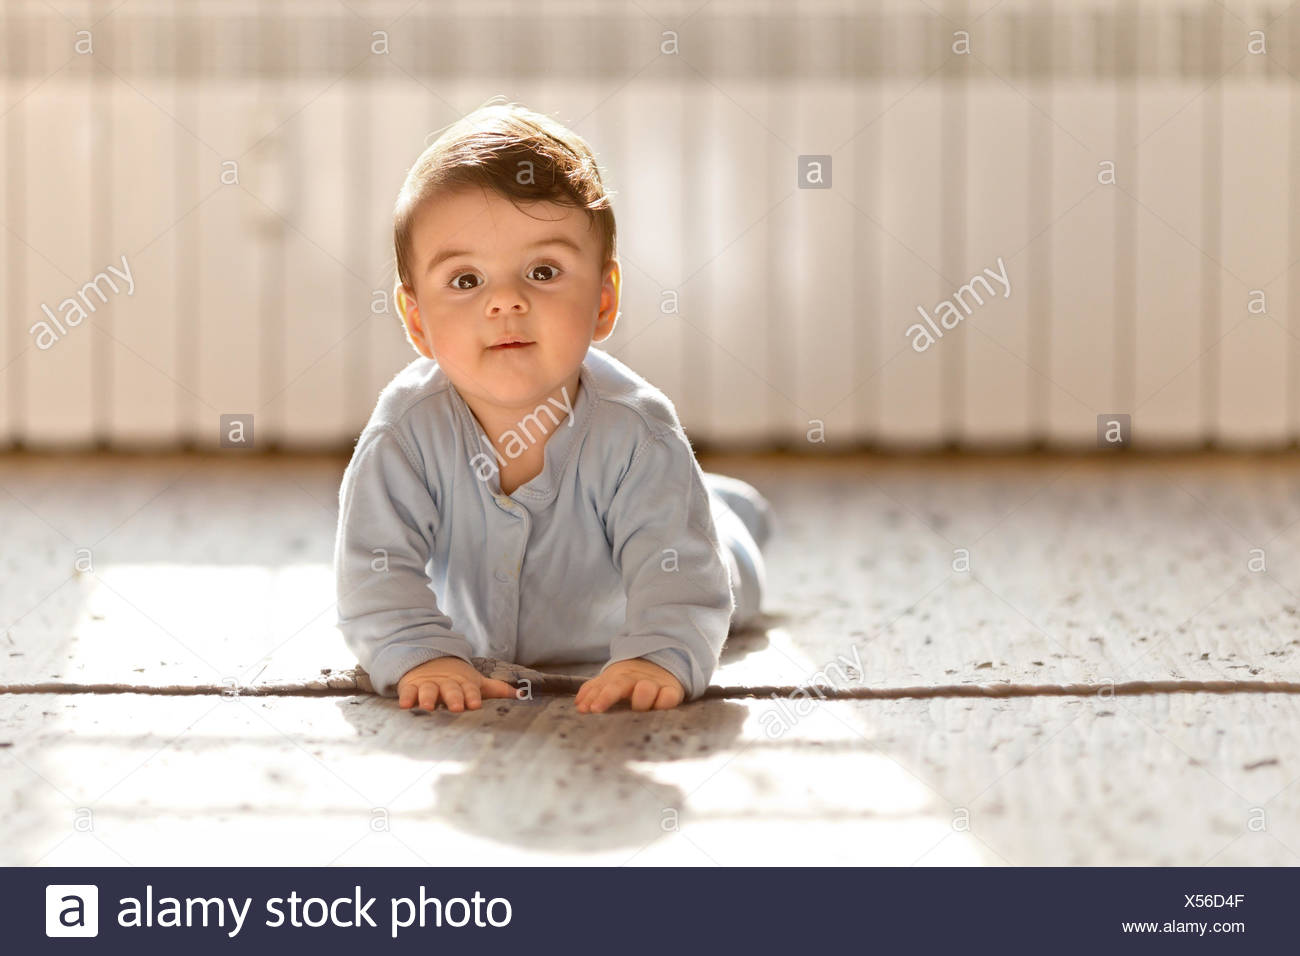 Baby boy looking at camera - Stock Image